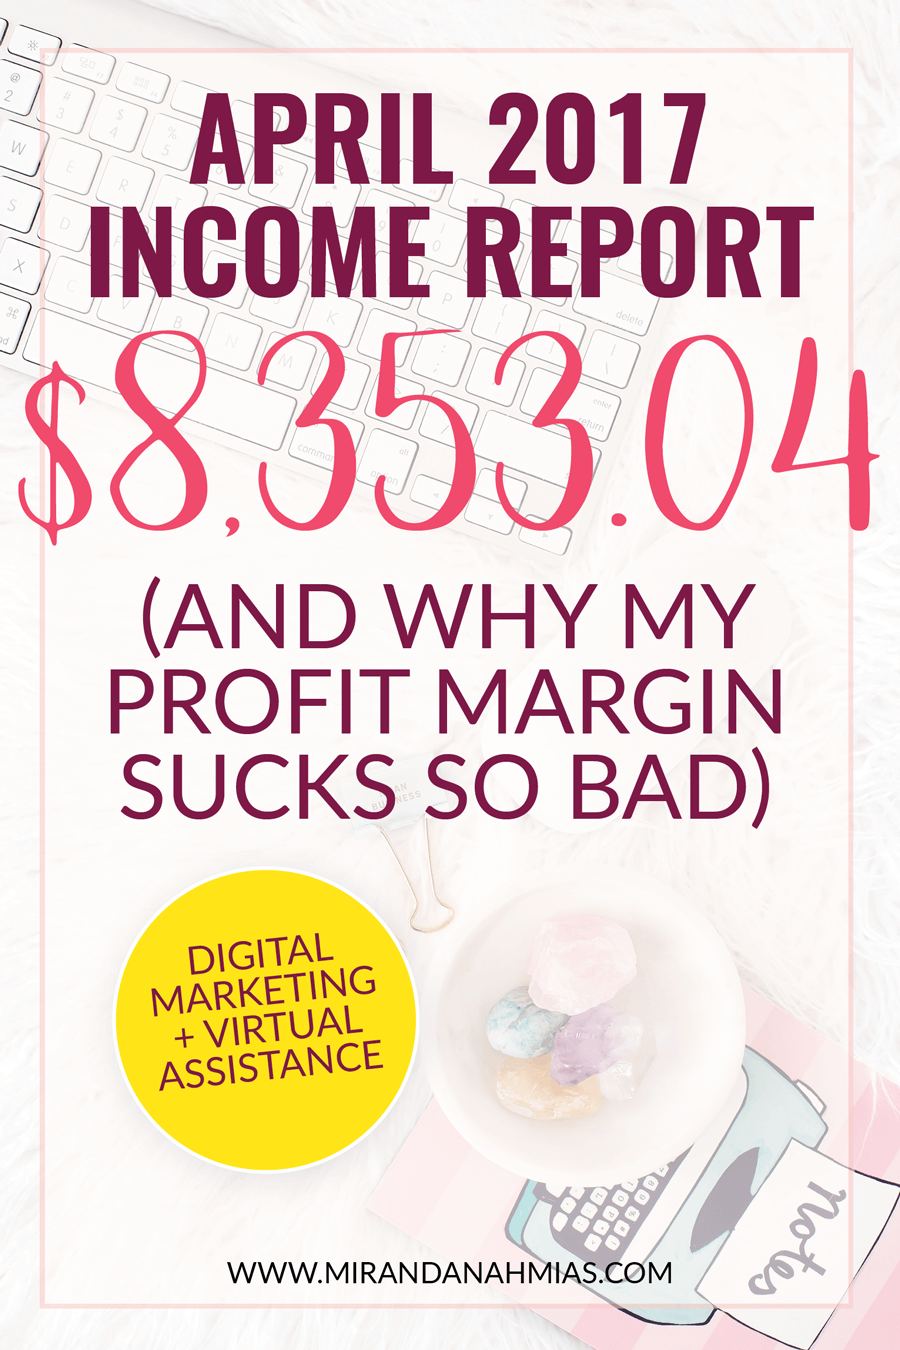 My April 2017 Income Report — $8,353.04! But ewwww my profit margin is so bad // Miranda Nahmias & Co. Digital Marketing + Virtual Assistance